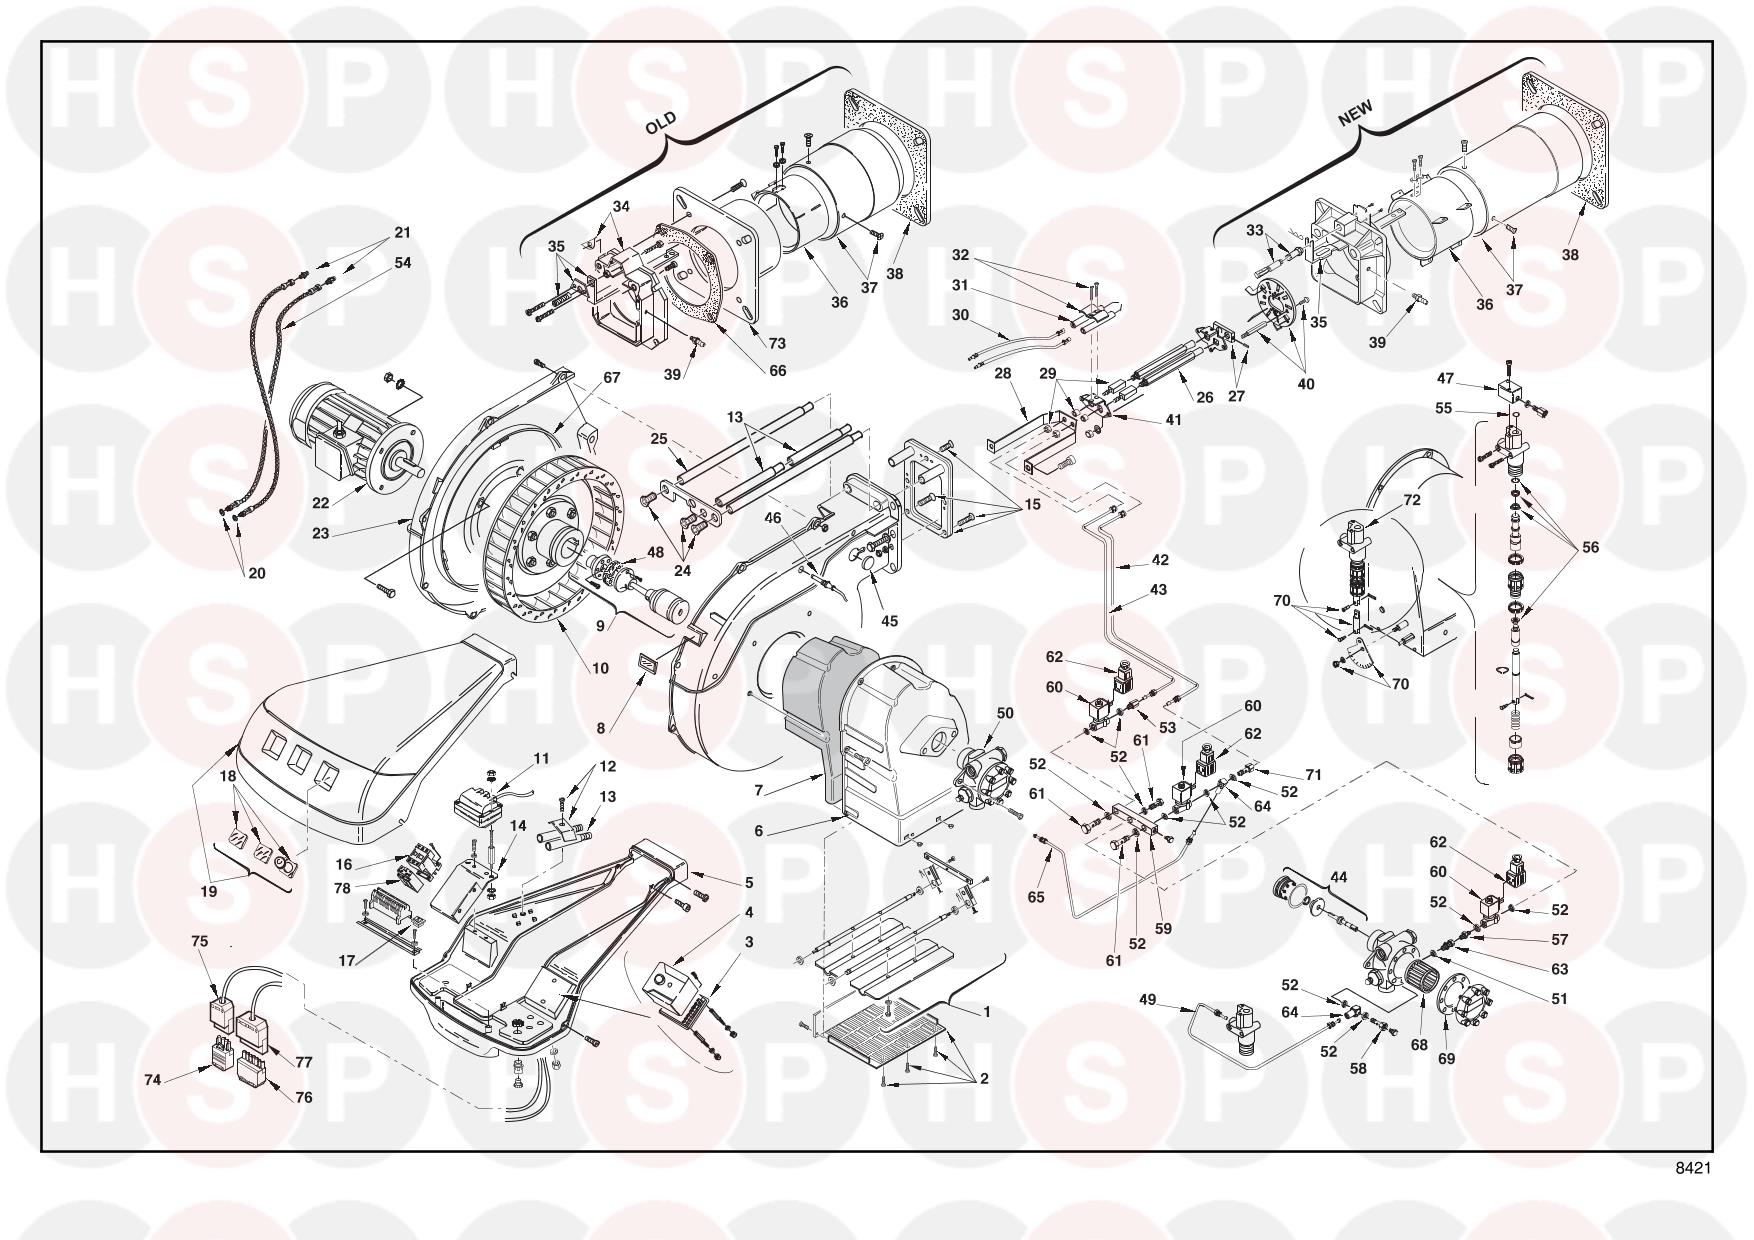 Riello RL 190 20011018 (TYPE 673 T1) (BURNER EXPLODED VIEW